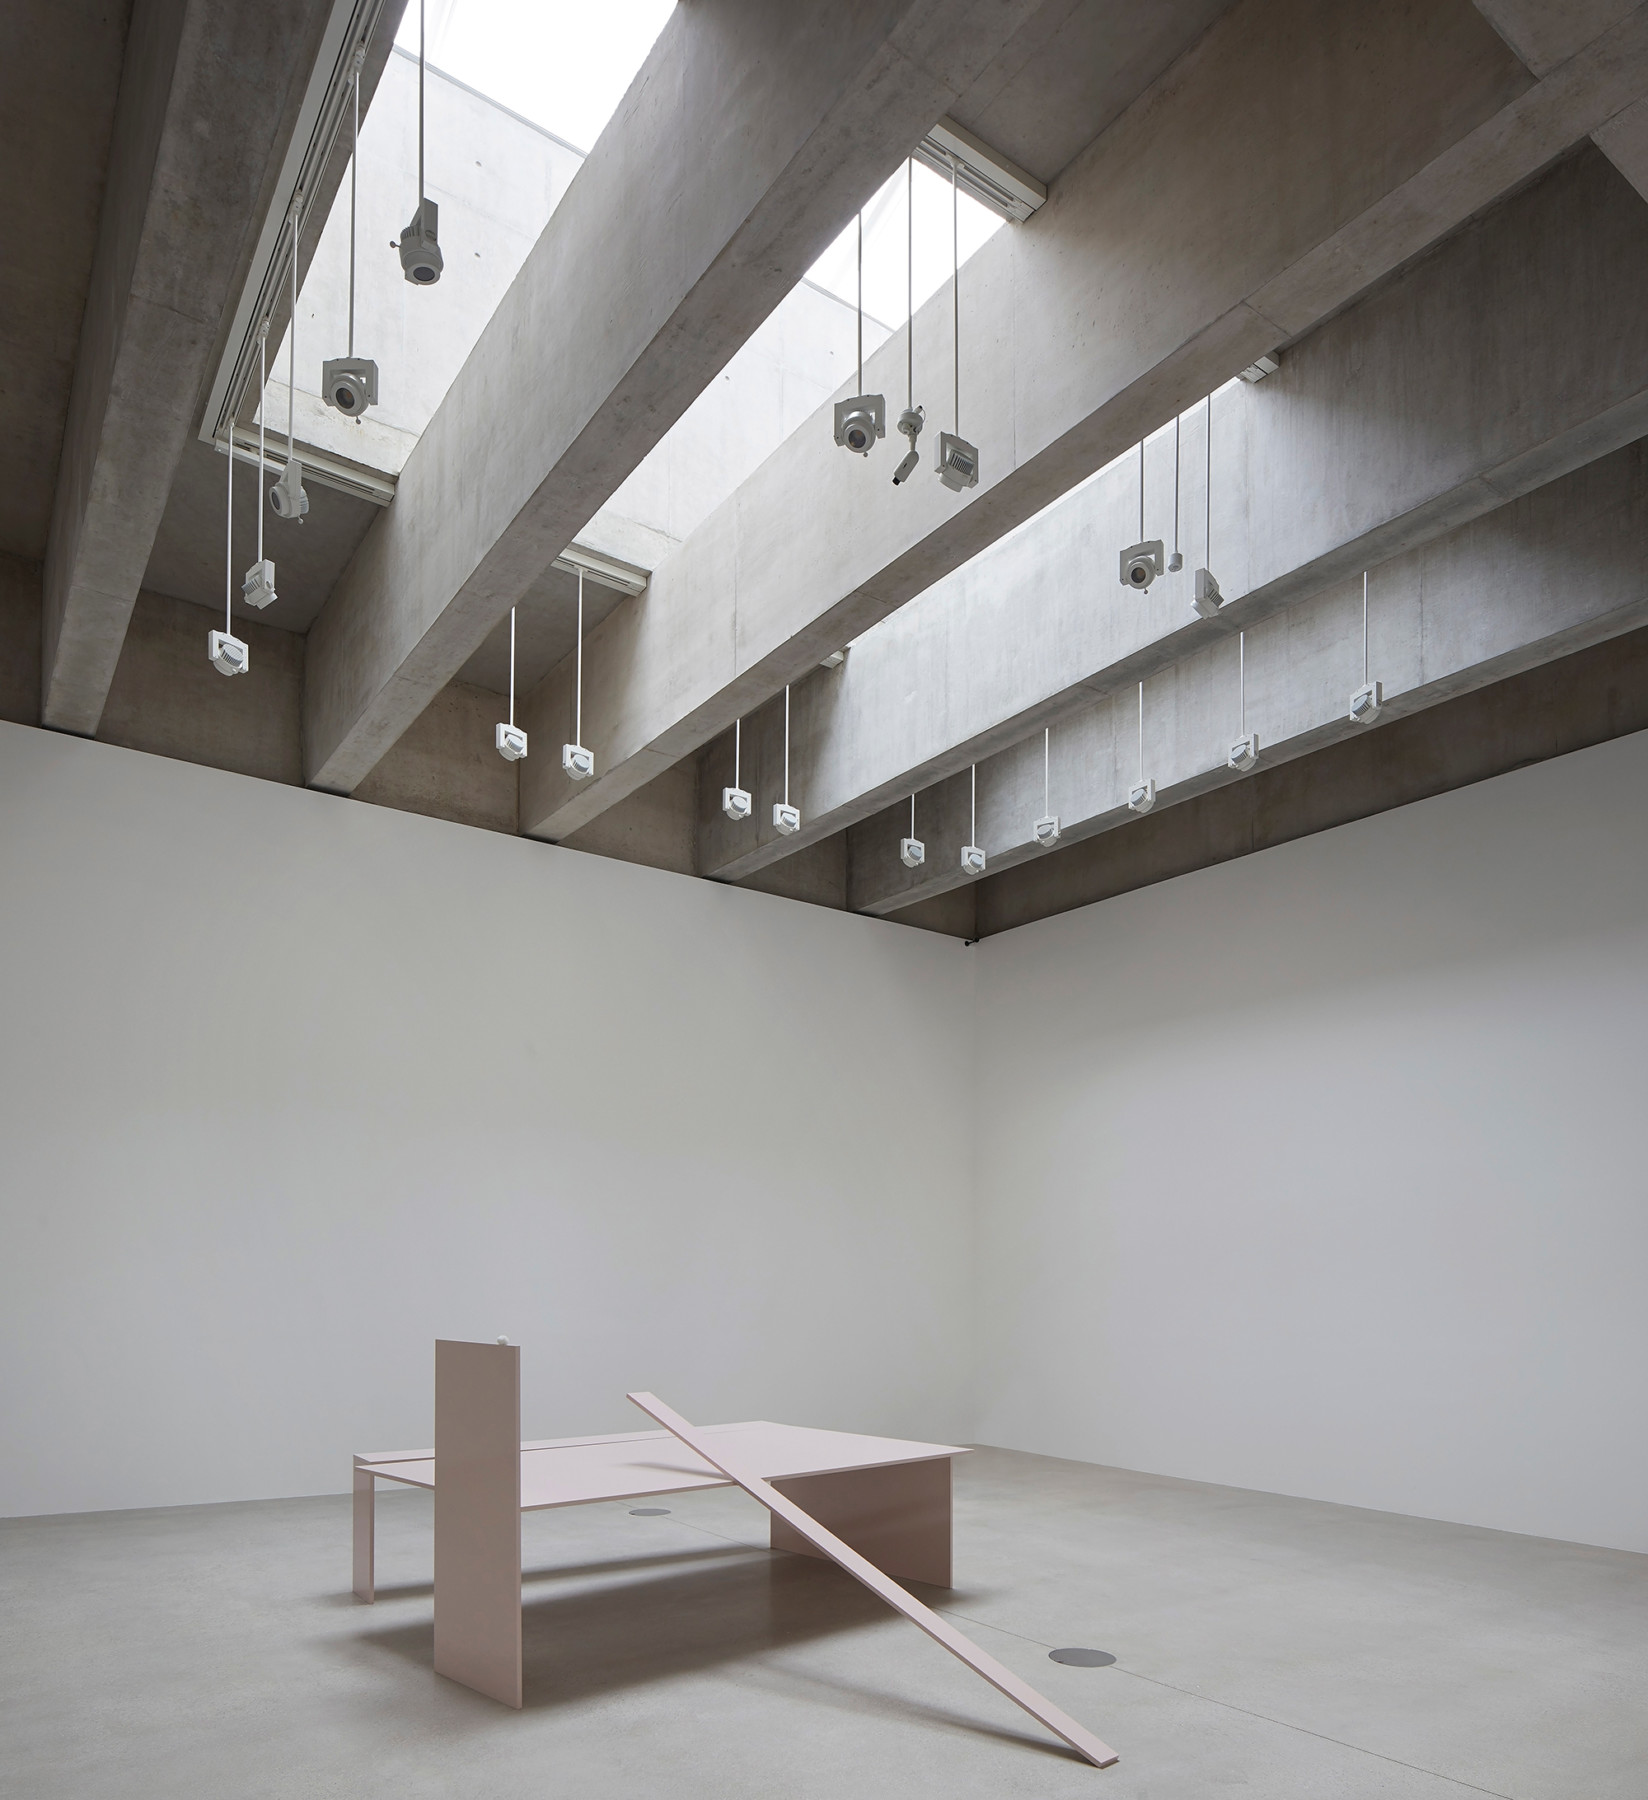 Jamie-fobert-architects-tate-st-ives-hufton-and-crow-concrete-gallery-rebecca-warren